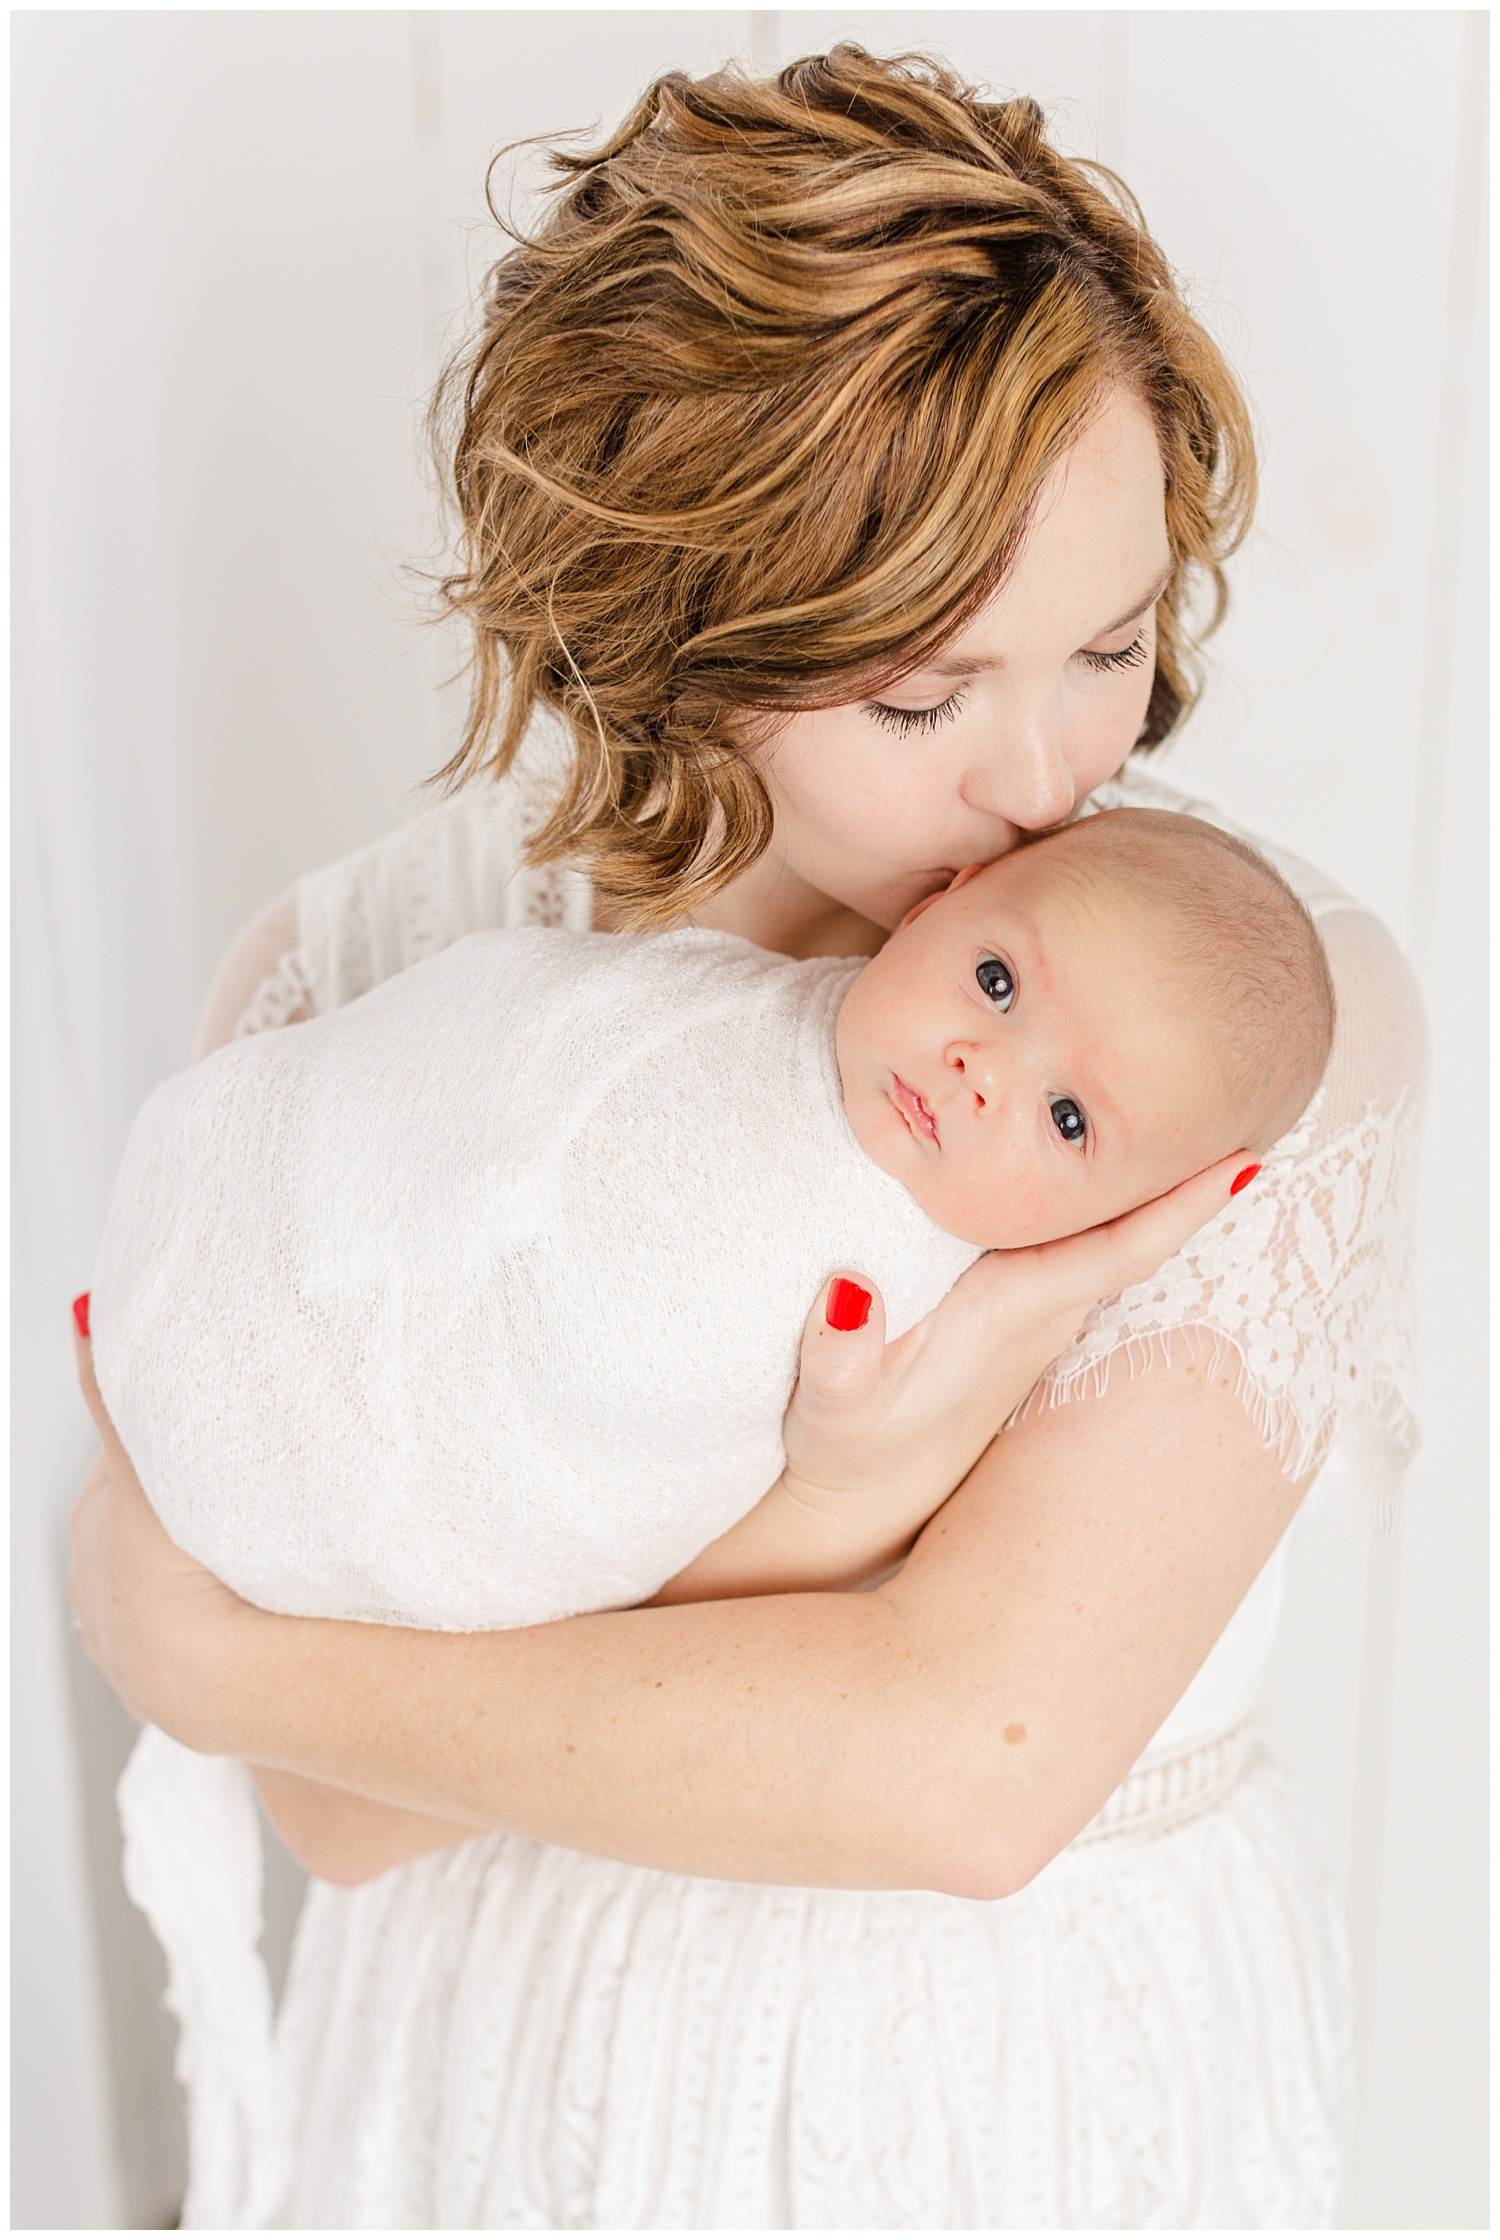 Bree dressed in white lace snuggles and gently kisses her new baby boy | CB Studio